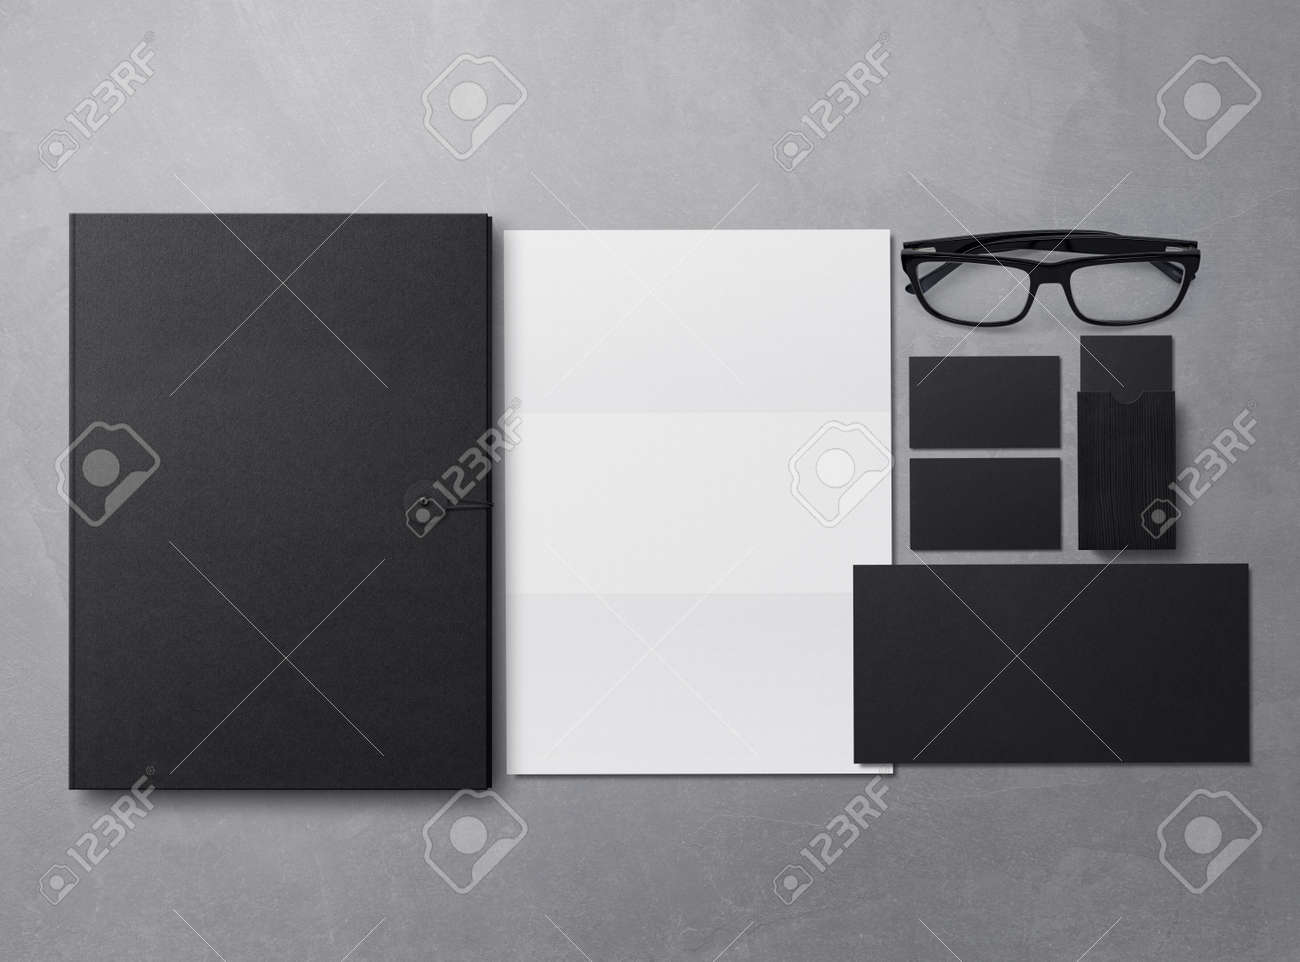 Corporate Identity Branding Mock Up. Set of elements on a gray background. Blank objects for placing your design. 3d illustration. - 149685022